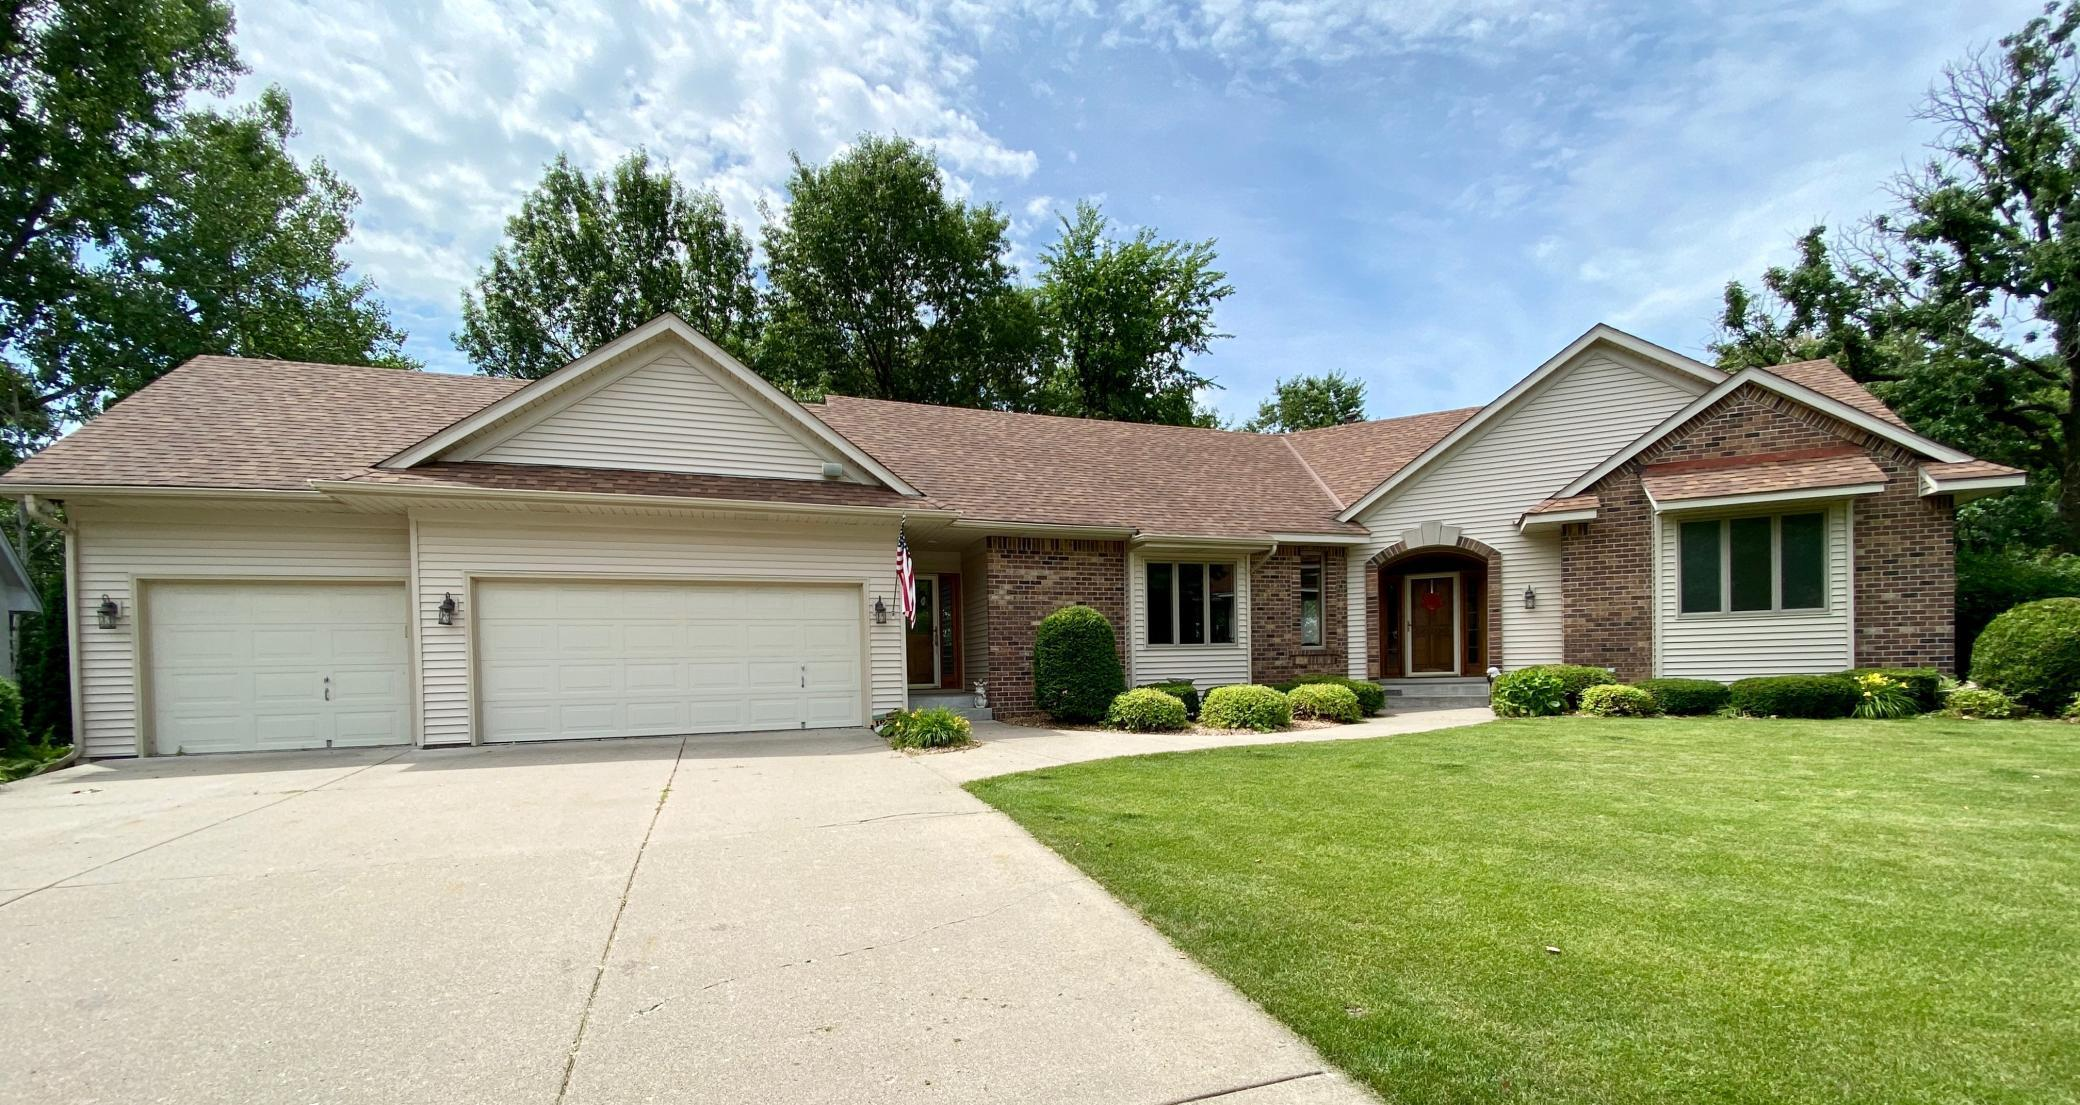 13890 Gulf Breeze Property Photo - Apple Valley, MN real estate listing